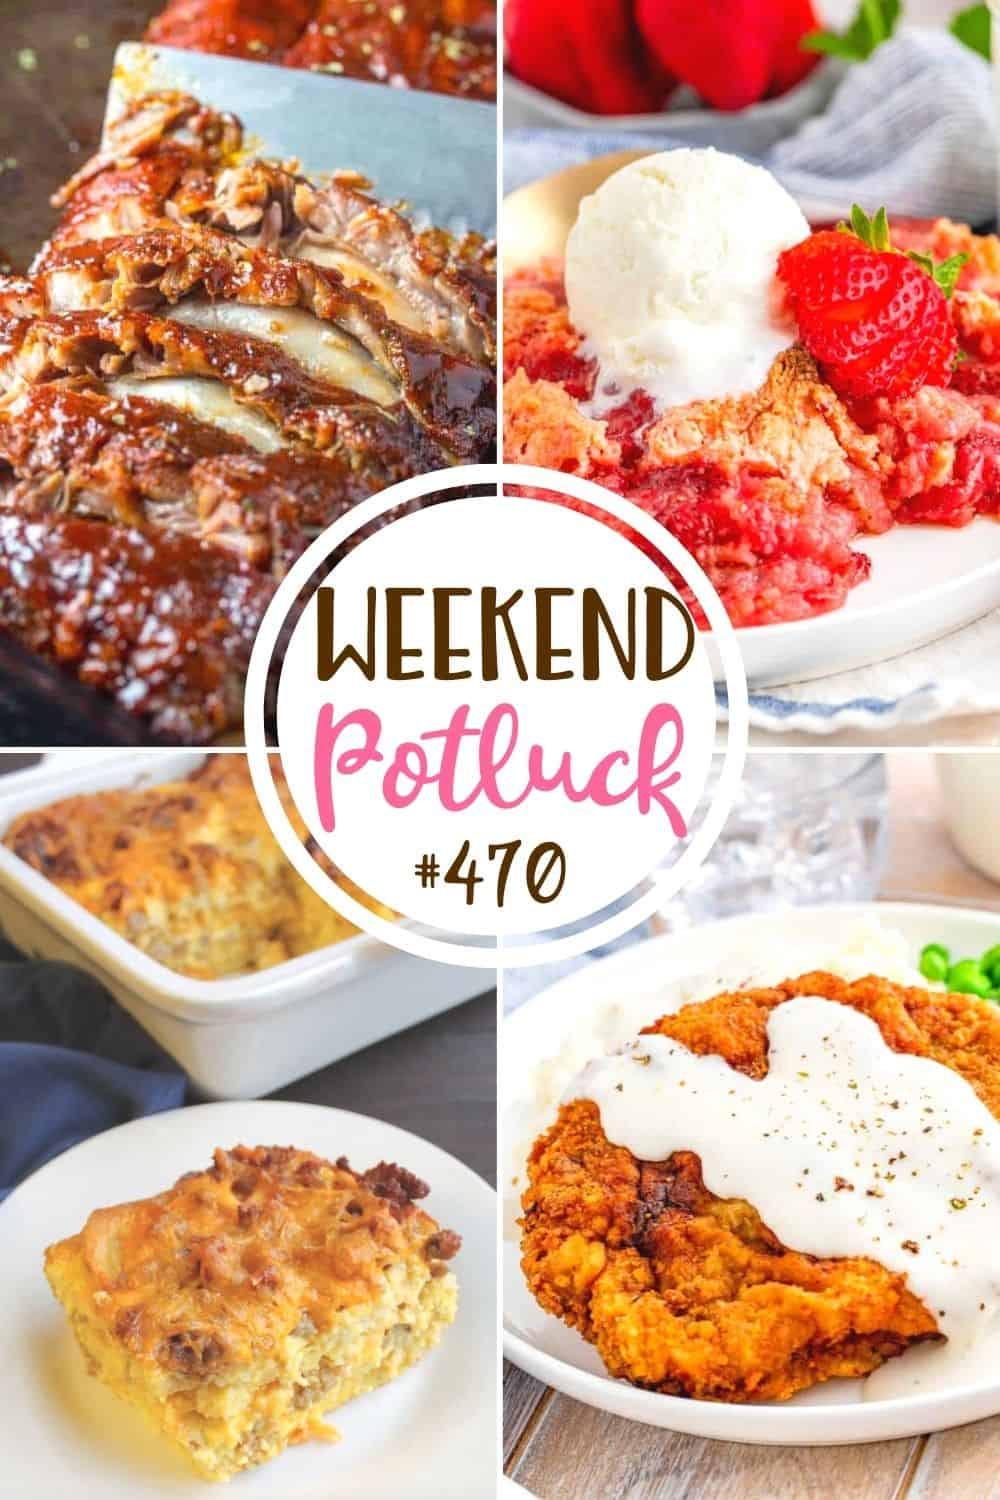 Weekend Potluck recipes: Fall Off The Bone Ribs, Sausage & Waffle Breakfast Casserole, Fresh Strawberry Dump Cake, Best Chicken Fried Steaks